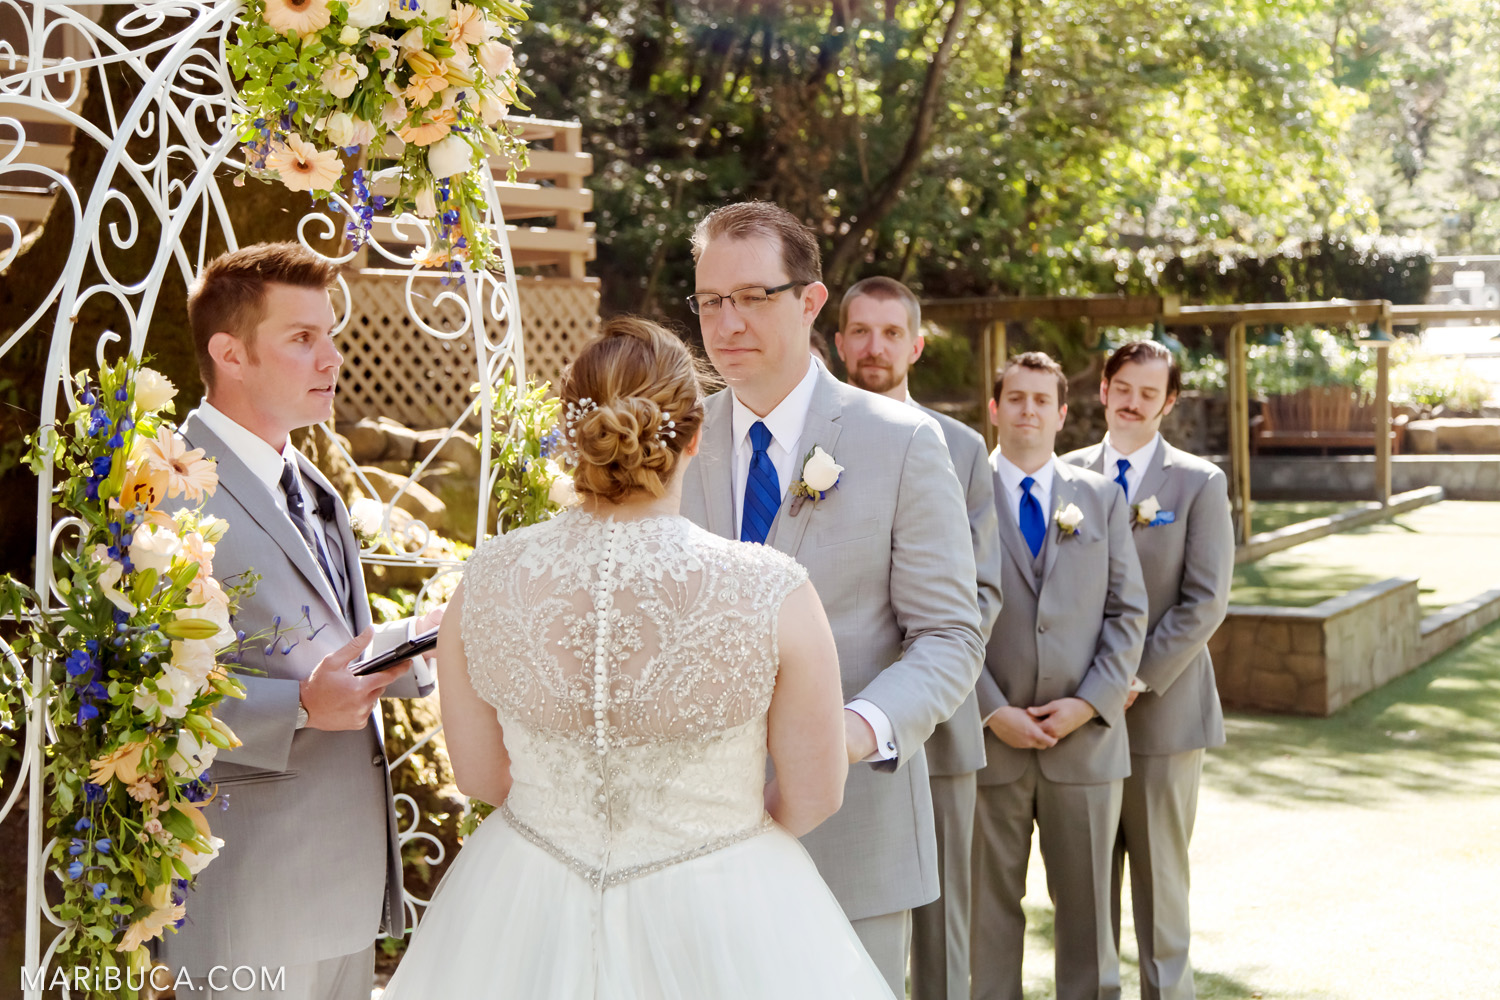 The groom looks in her fabiolus bride in the wedding ceremony in the in the Saratoga Springs Venue